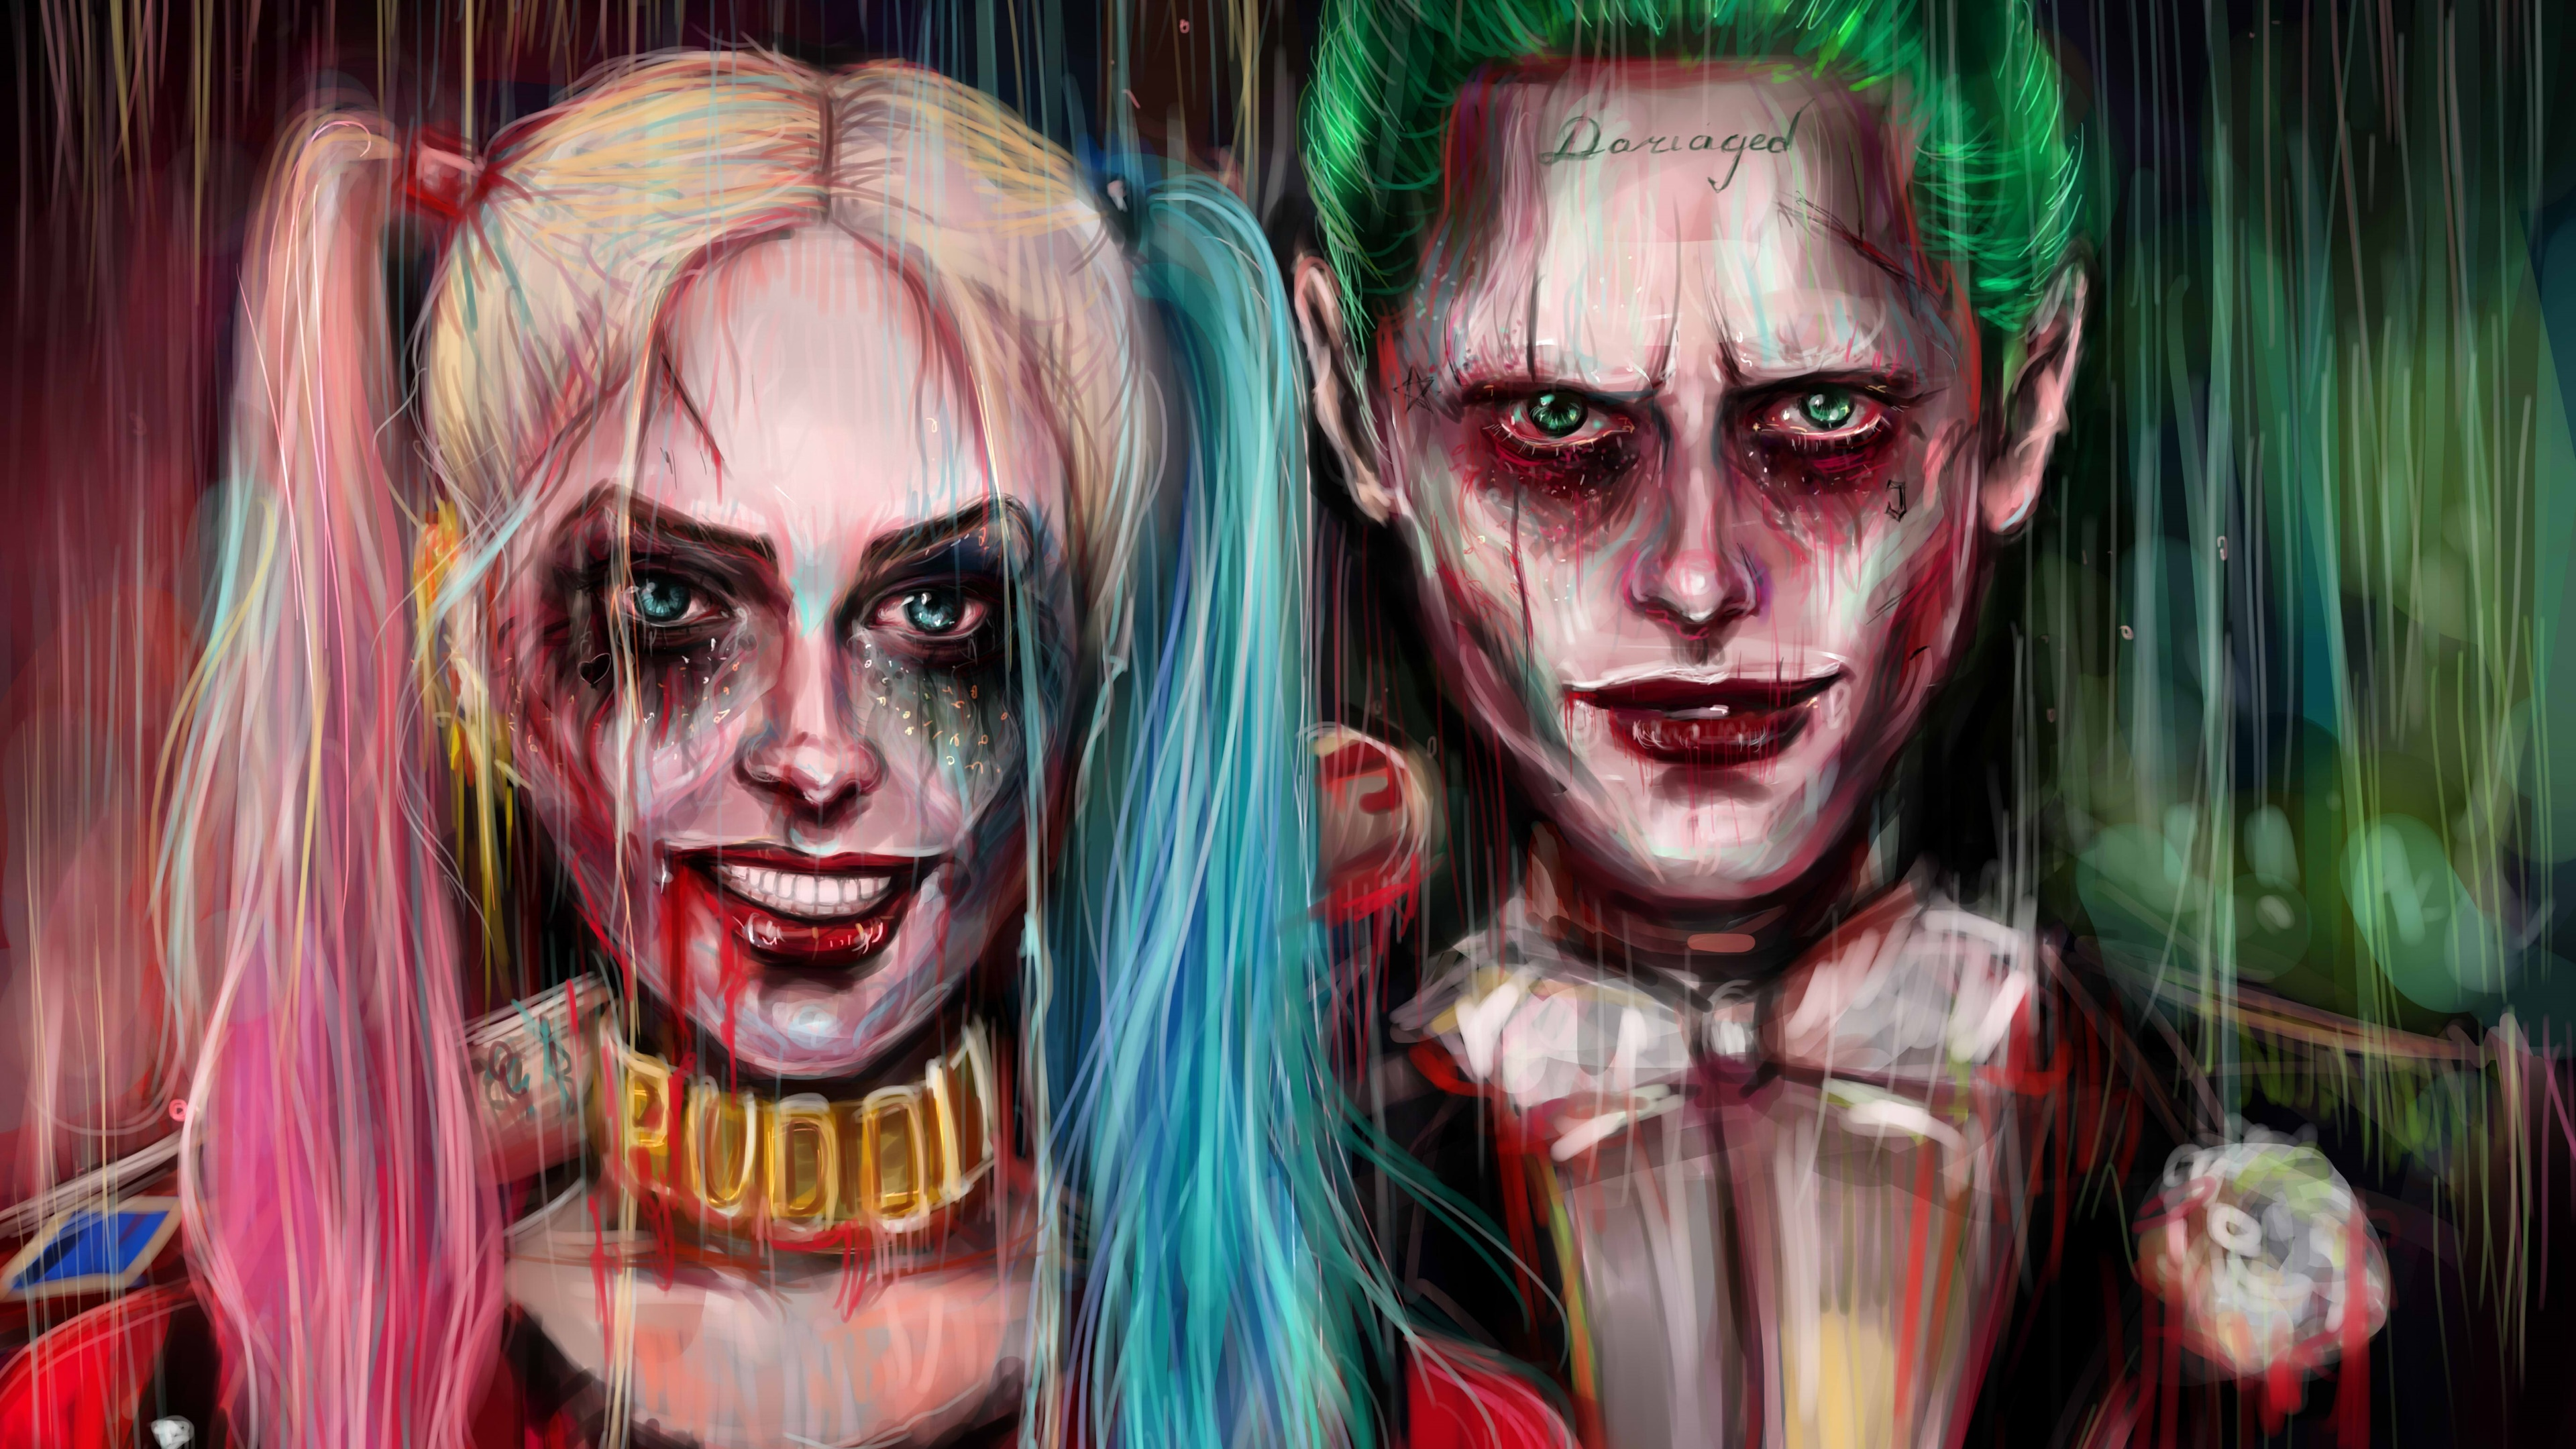 harley quinn joker painting artwork 4k 1540749125 - Harley Quinn Joker Painting Artwork 4k - suicide squad wallpapers, joker wallpapers, hd-wallpapers, harley quinn wallpapers, artwork wallpapers, 5k wallpapers, 4k-wallpapers